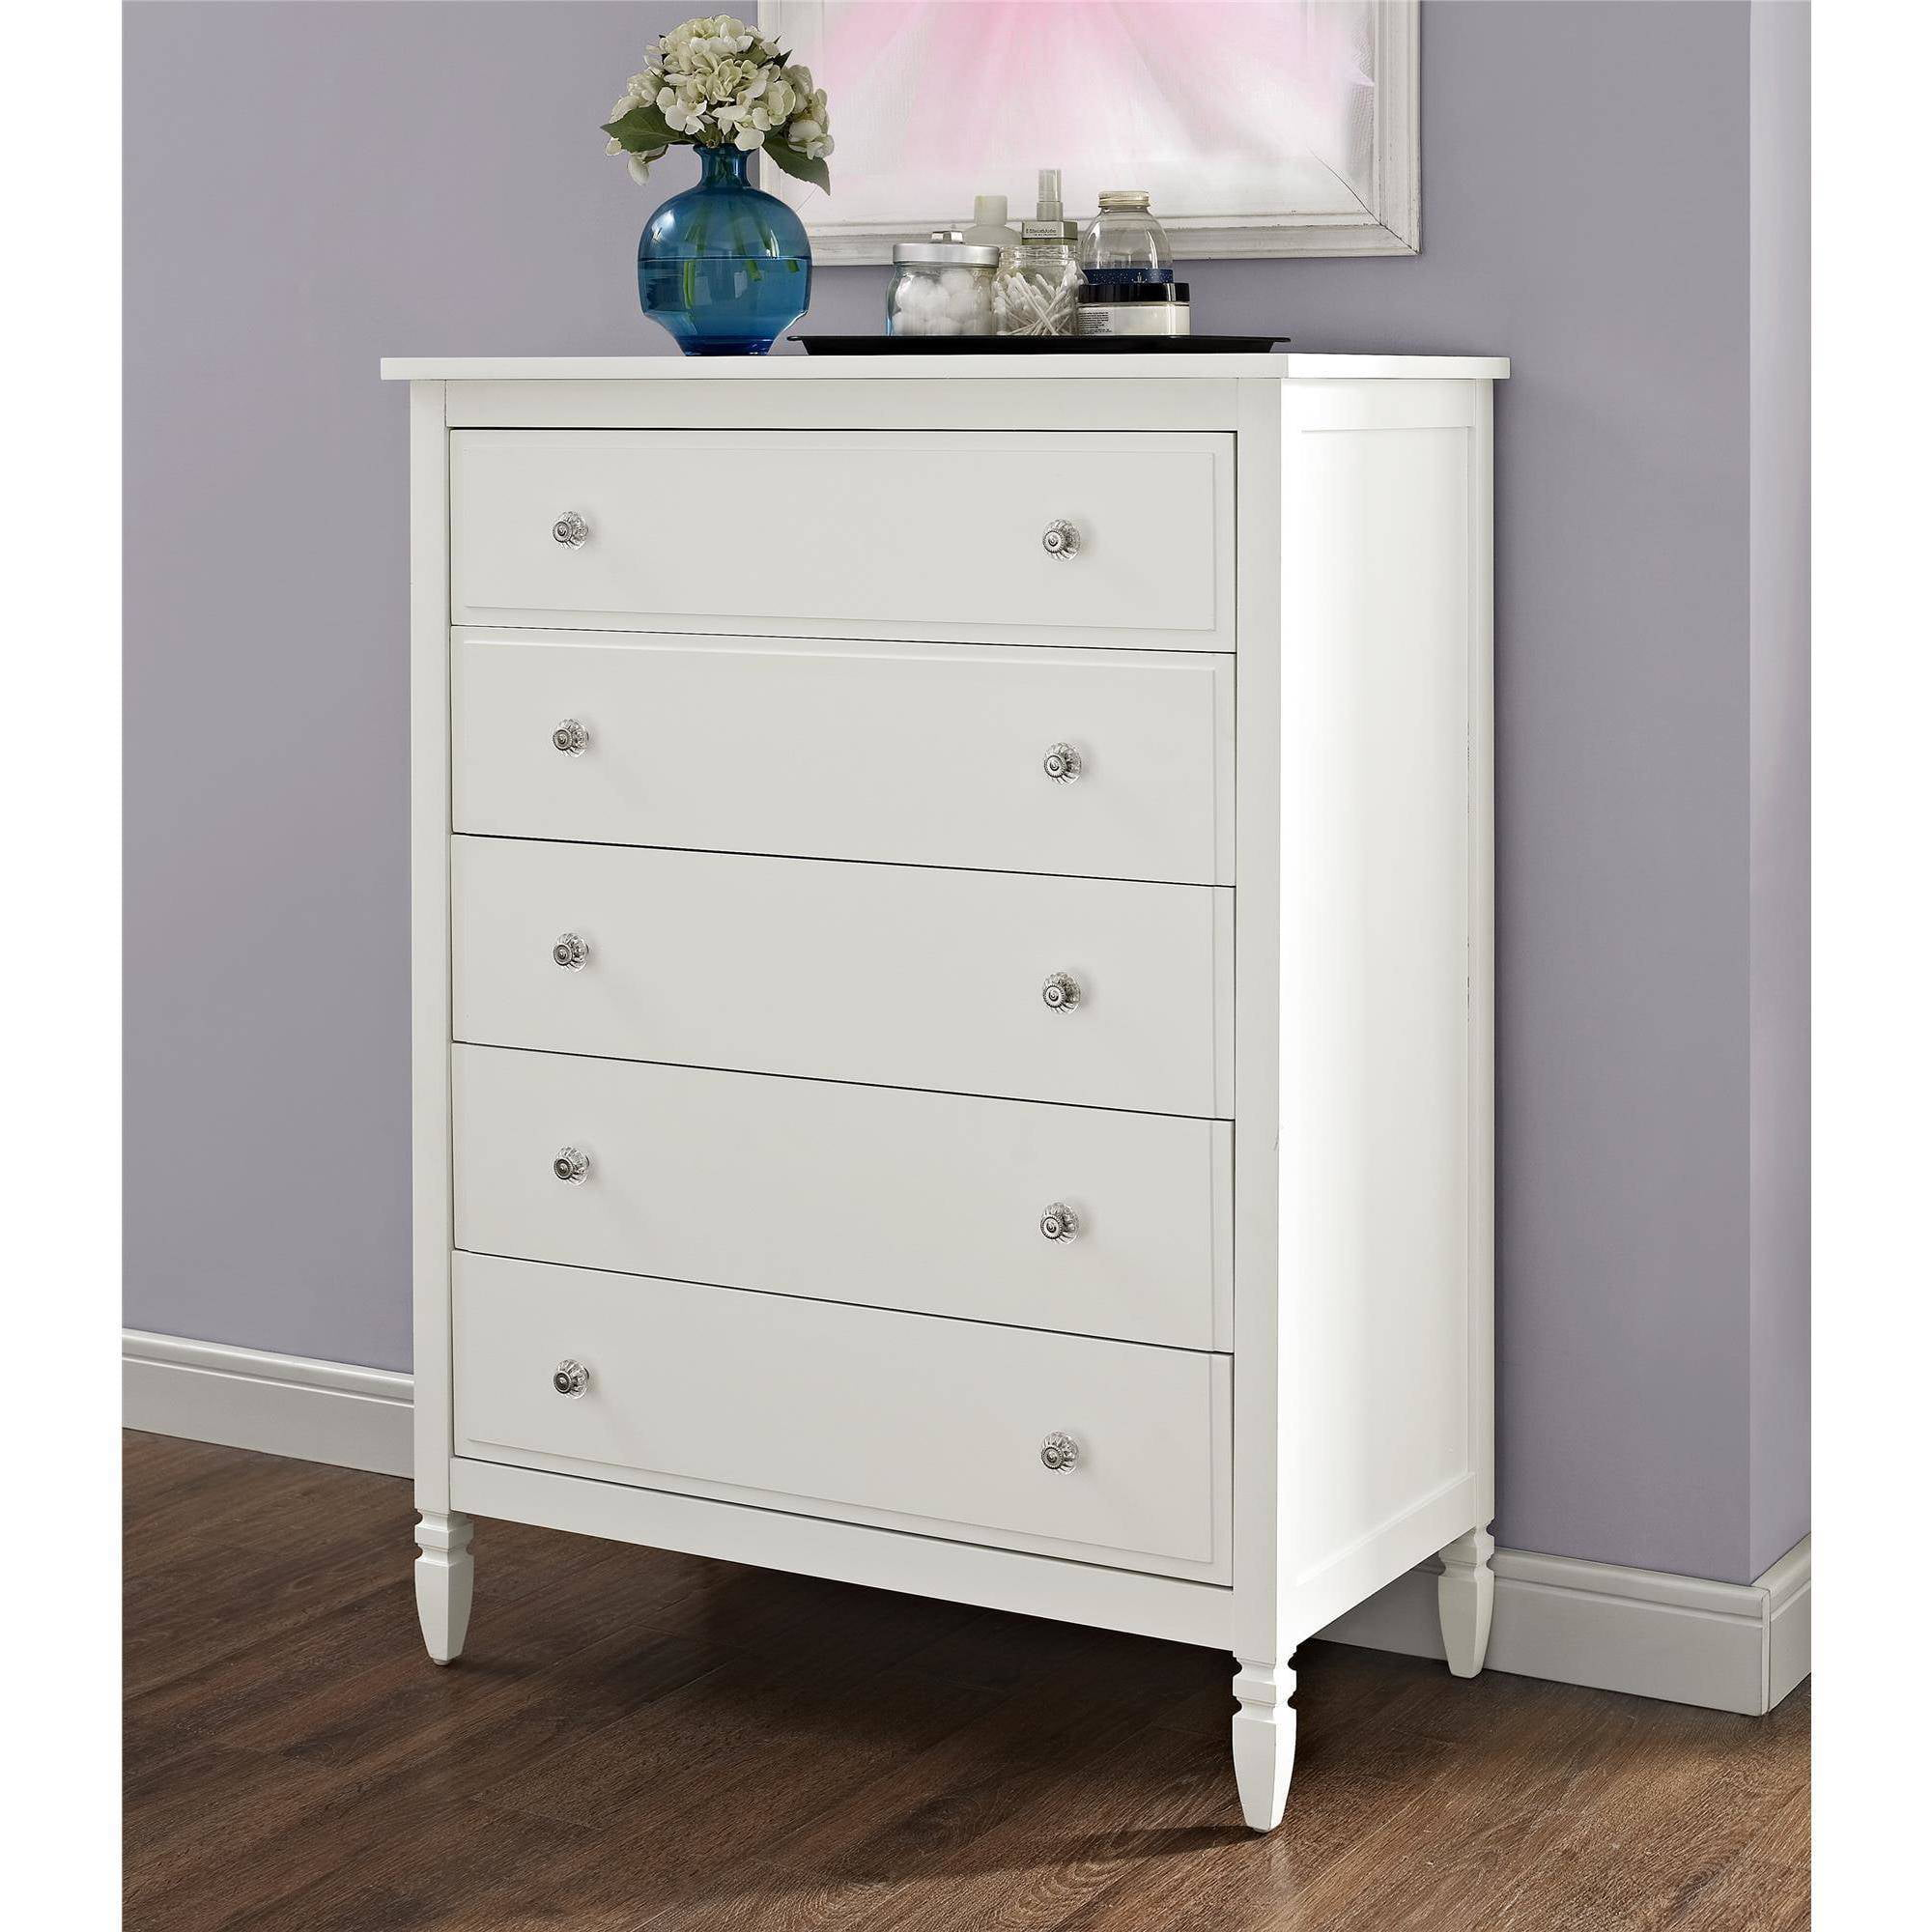 chest south view white amazon drawer pure baby shore cuddly dp larger com drawers